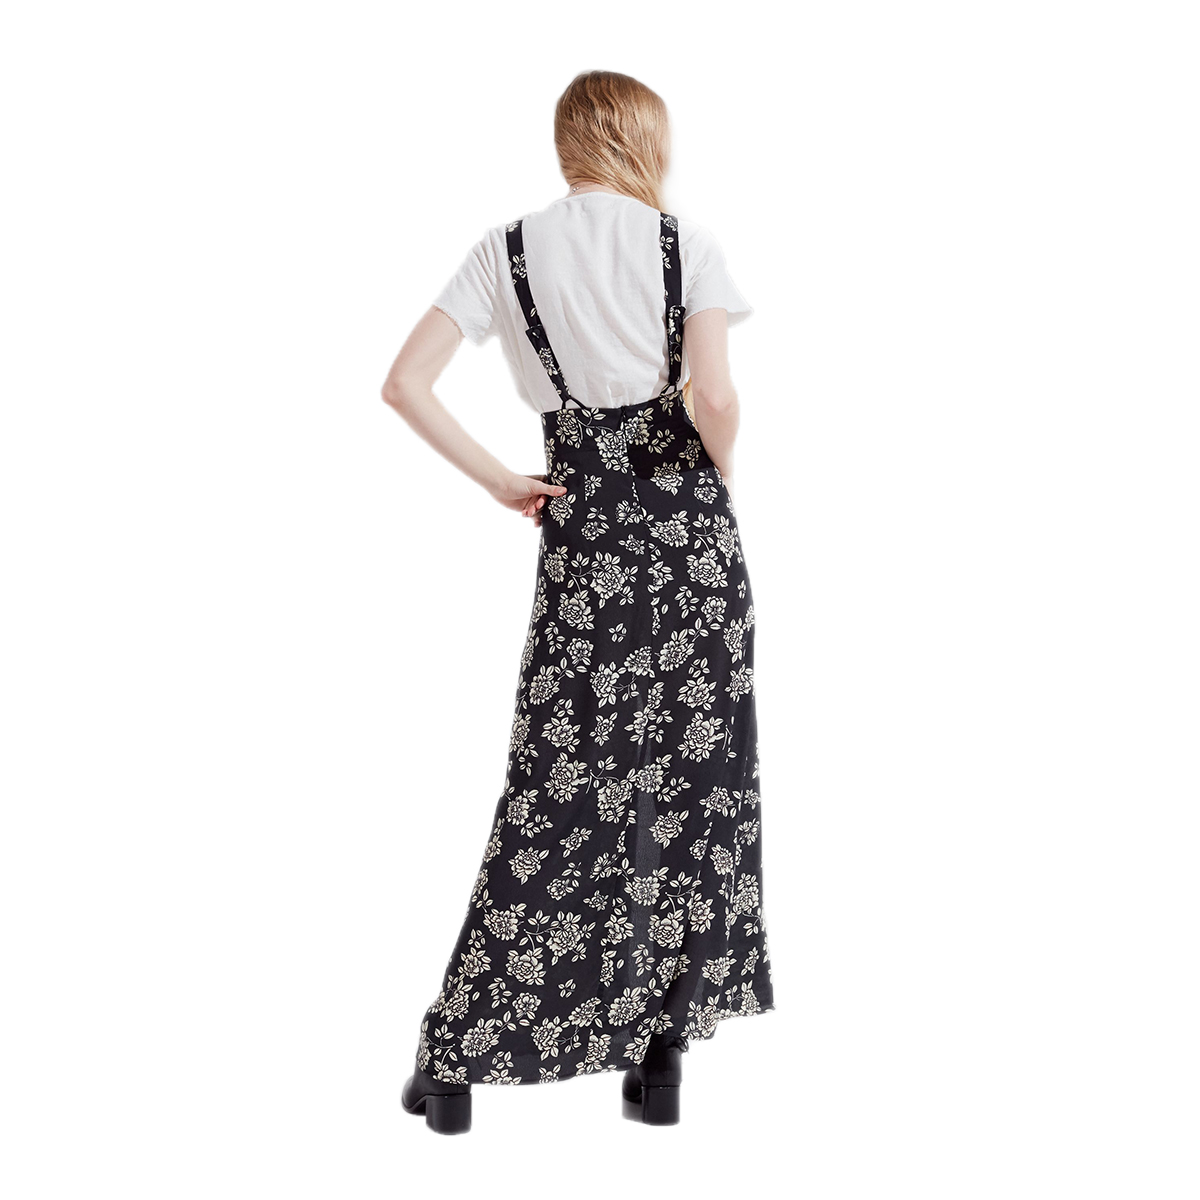 HDY Haodyoyi Print Chiffon Vintage Elegant Braces Asymmetrical Empire Comfortable Light High Looking Contracted Dress in Dresses from Women 39 s Clothing